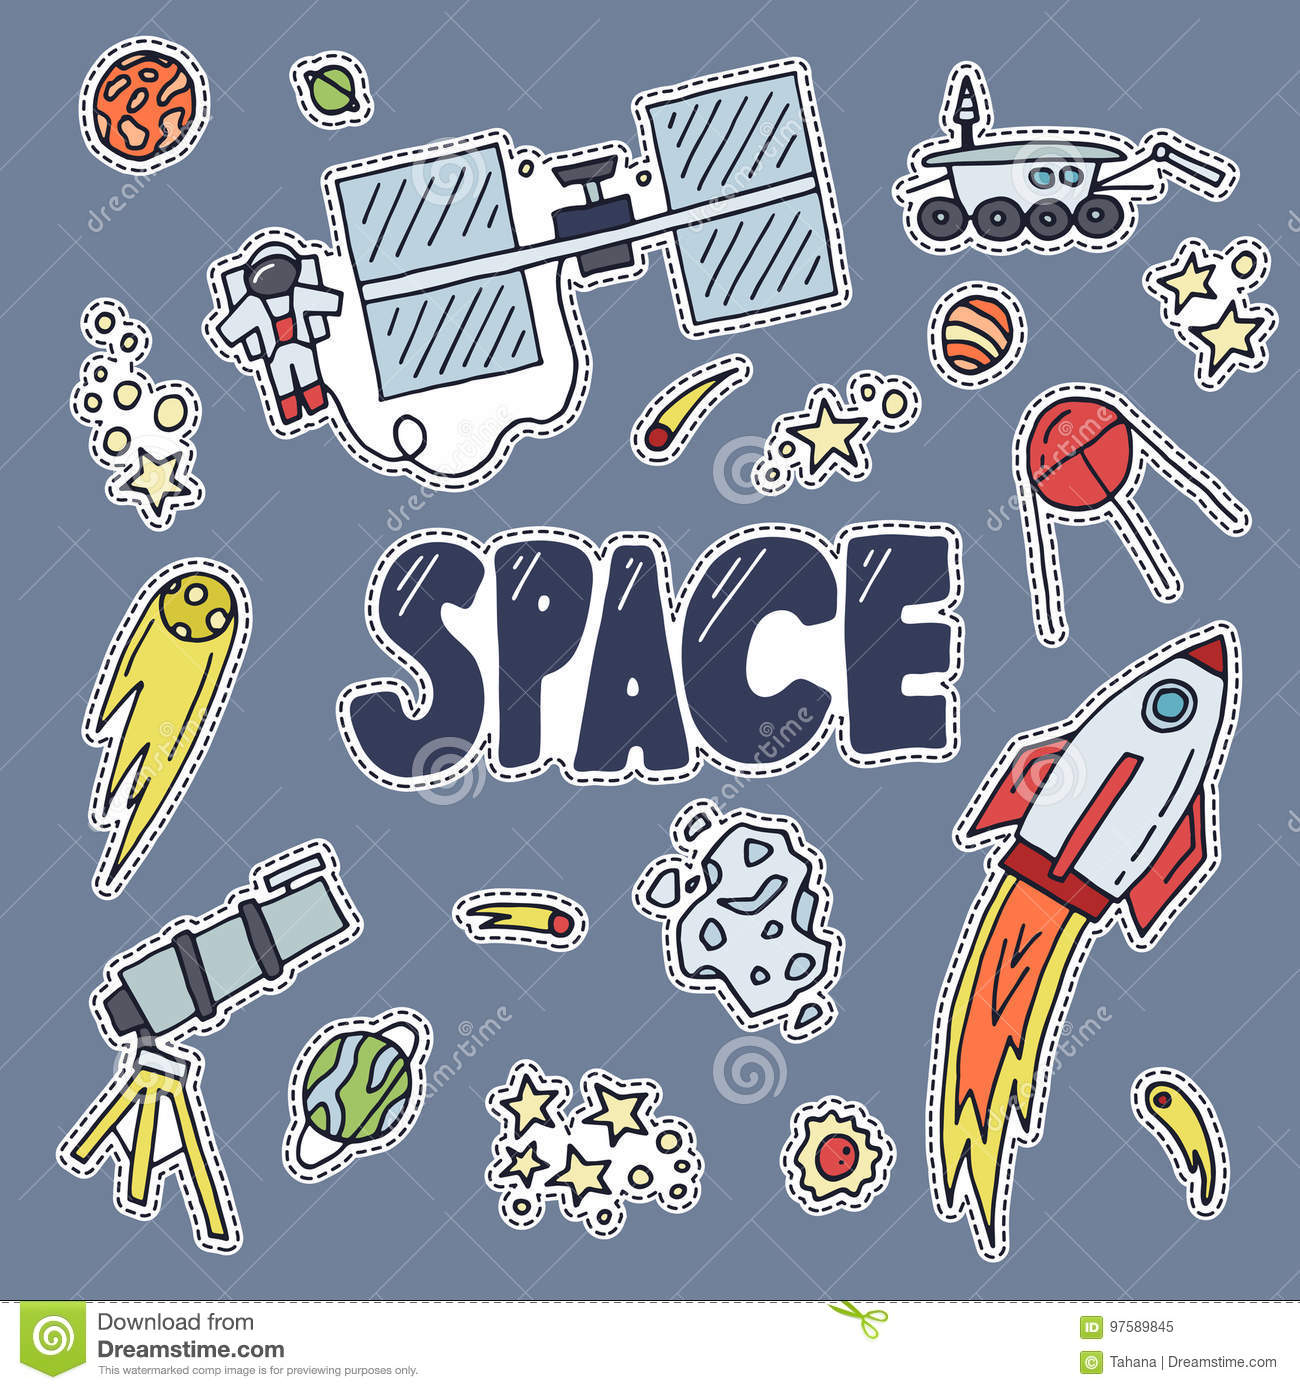 Space patch vector illustration. Cosmos discovery and exploration poster.  Doodle style, cartoon design